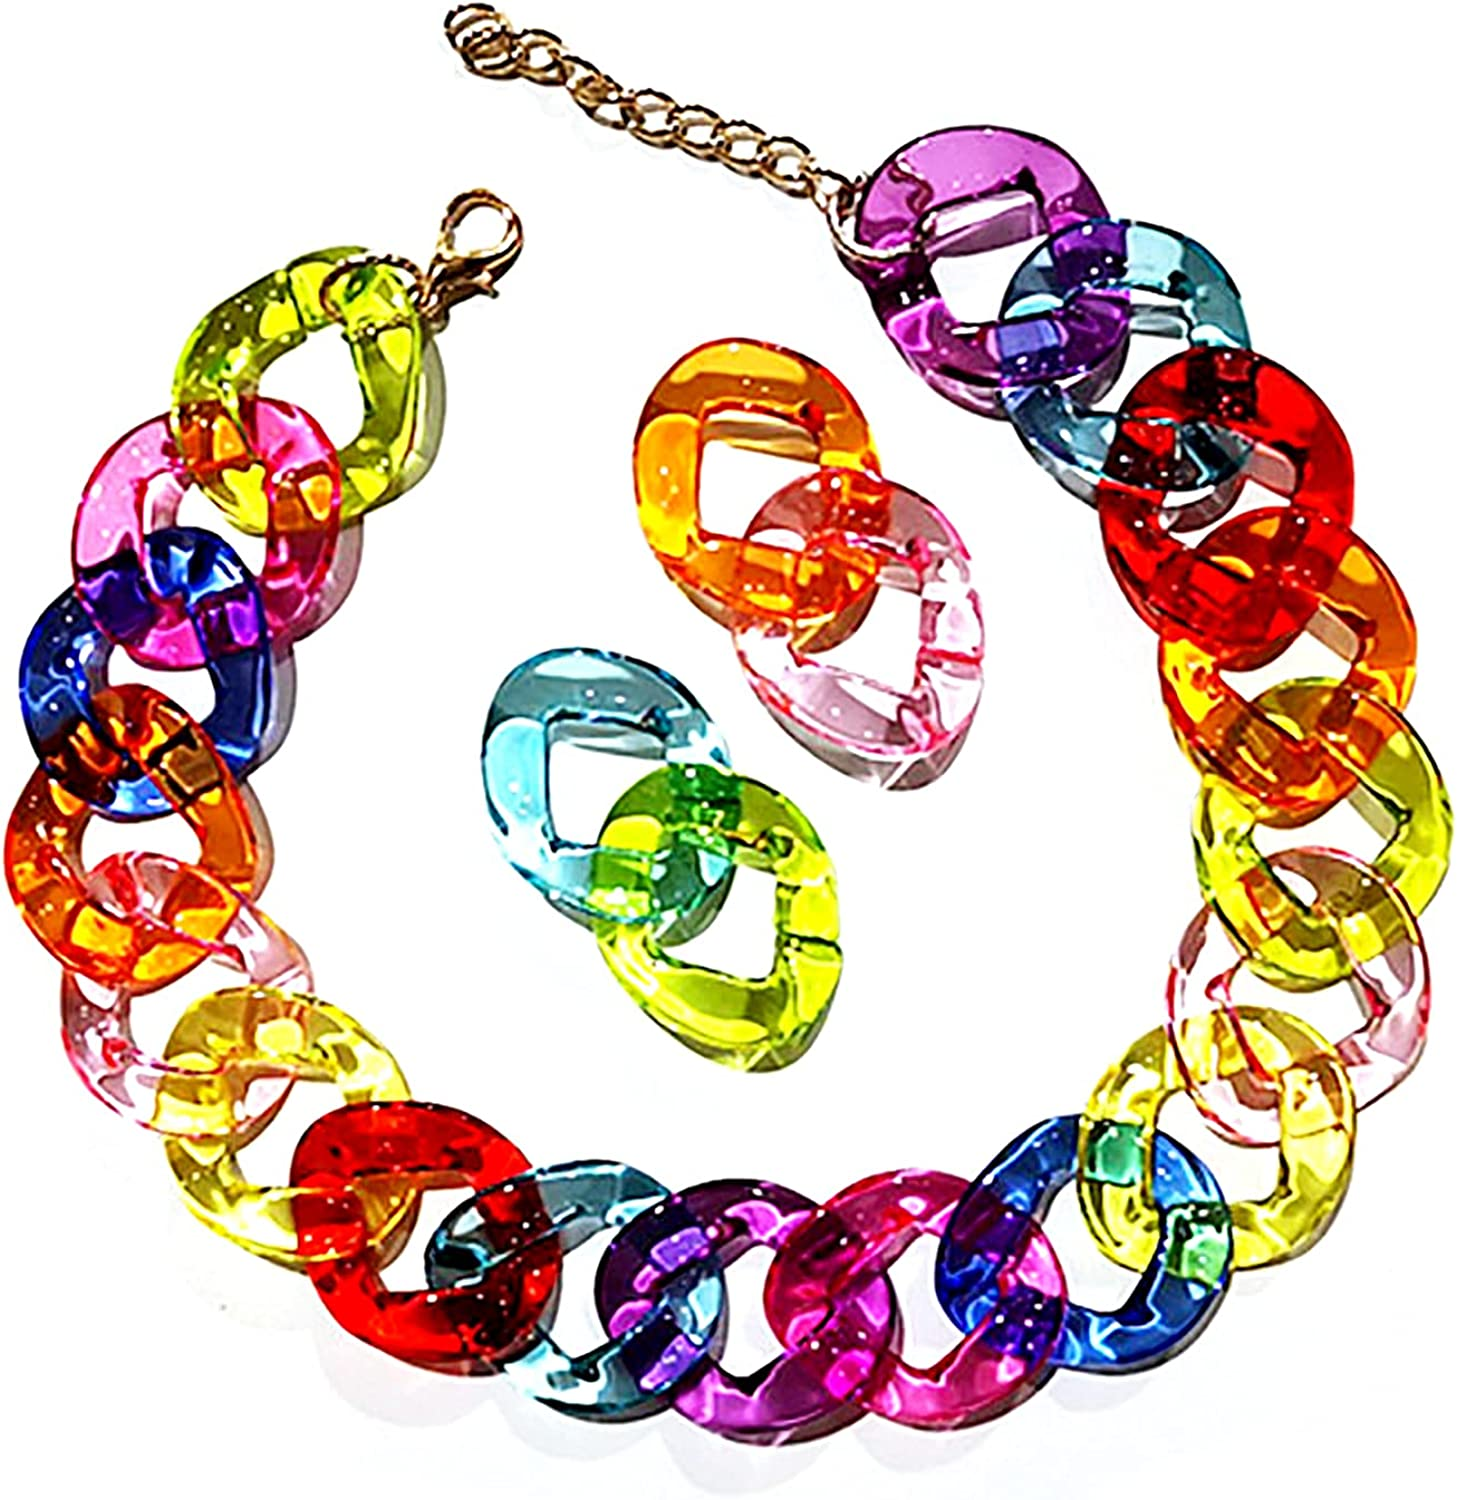 Pingyongchang Colorful Transparant Acrylic Paperclip Chain Choker Bracelet Earring Jewelry Set Rainbow Colors Resin Link Drop Earrings Chains Bracelets Necklaces Punk Jewellry for Women Girls